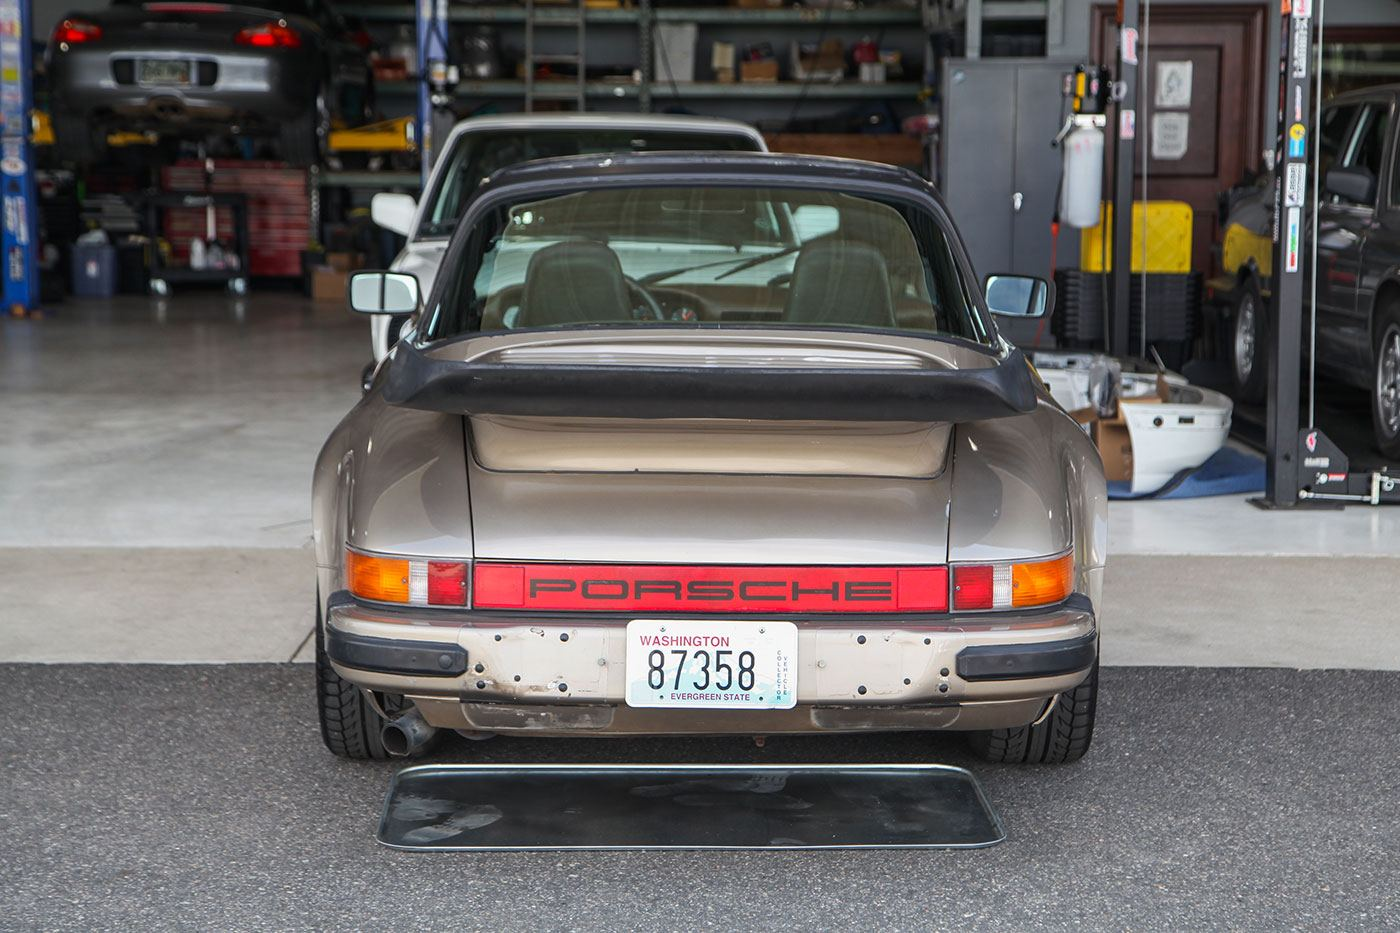 1982 Porsche 911SC Targa exterior photo